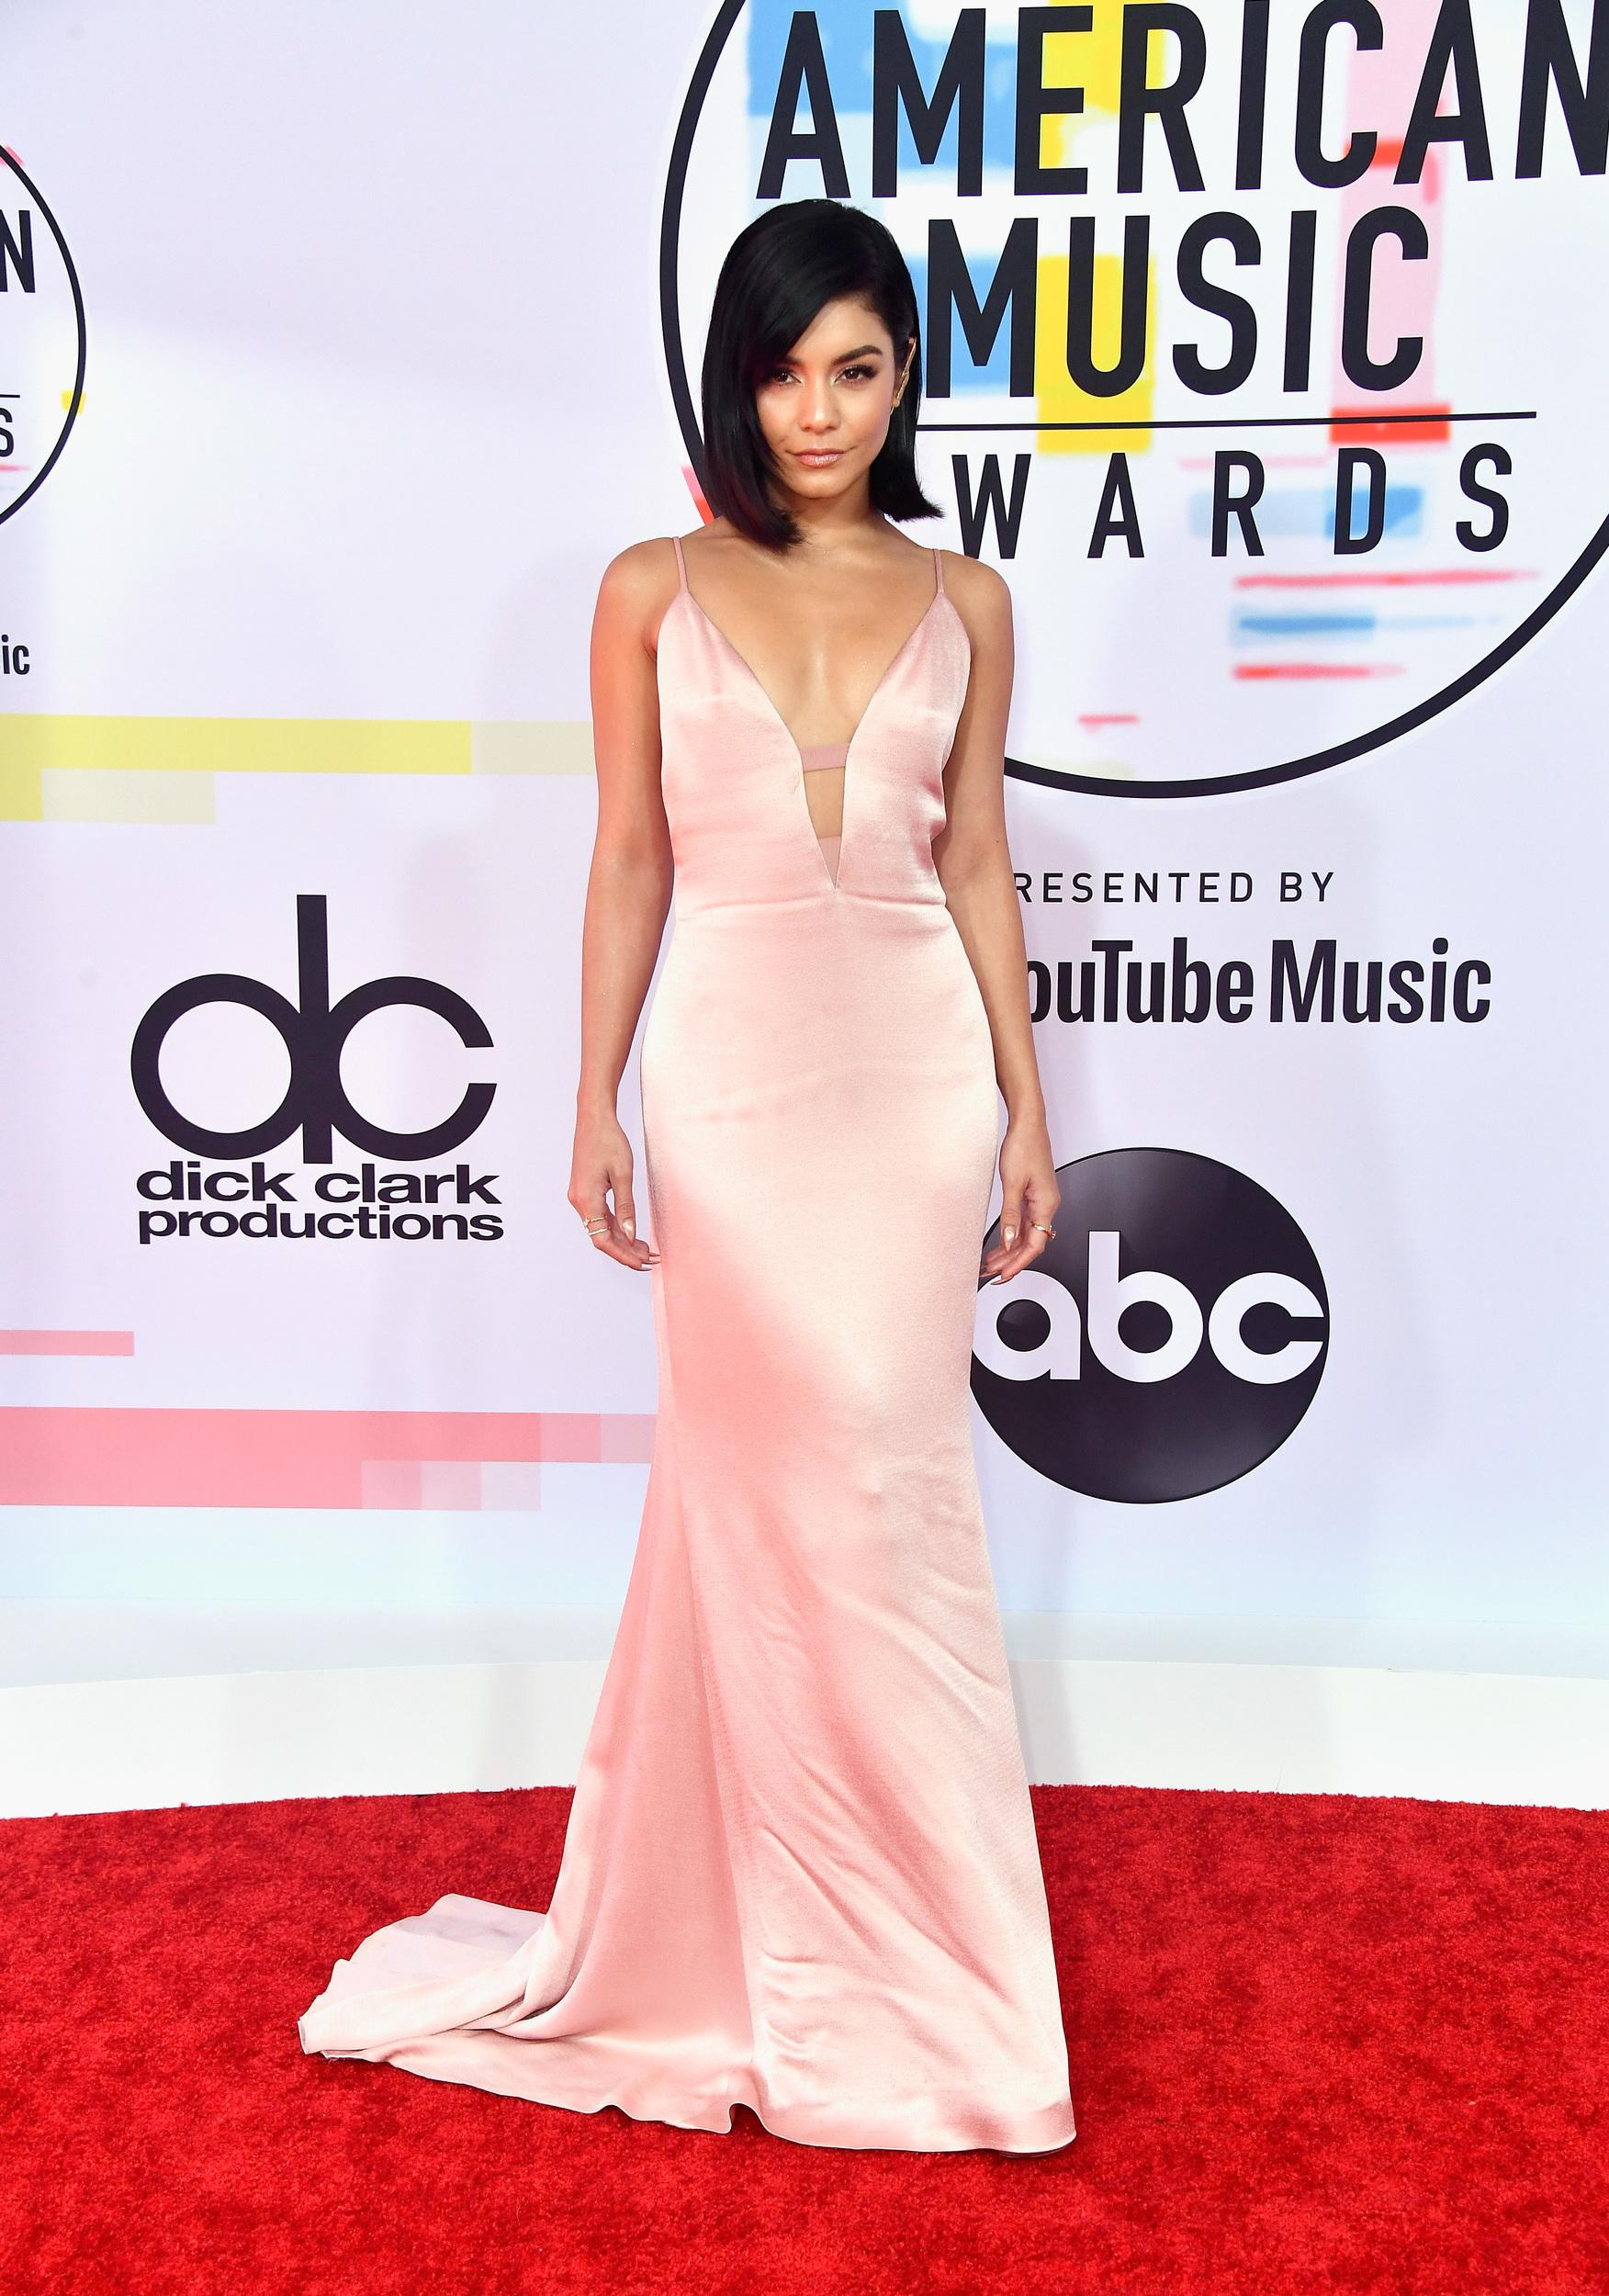 LOS ANGELES, CA - OCTOBER 09: Vanessa Hudgens attends the 2018 American Music Awards at Microsoft Theater on October 9, 2018 in Los Angeles, California. (Photo by Frazer Harrison/Getty Images)